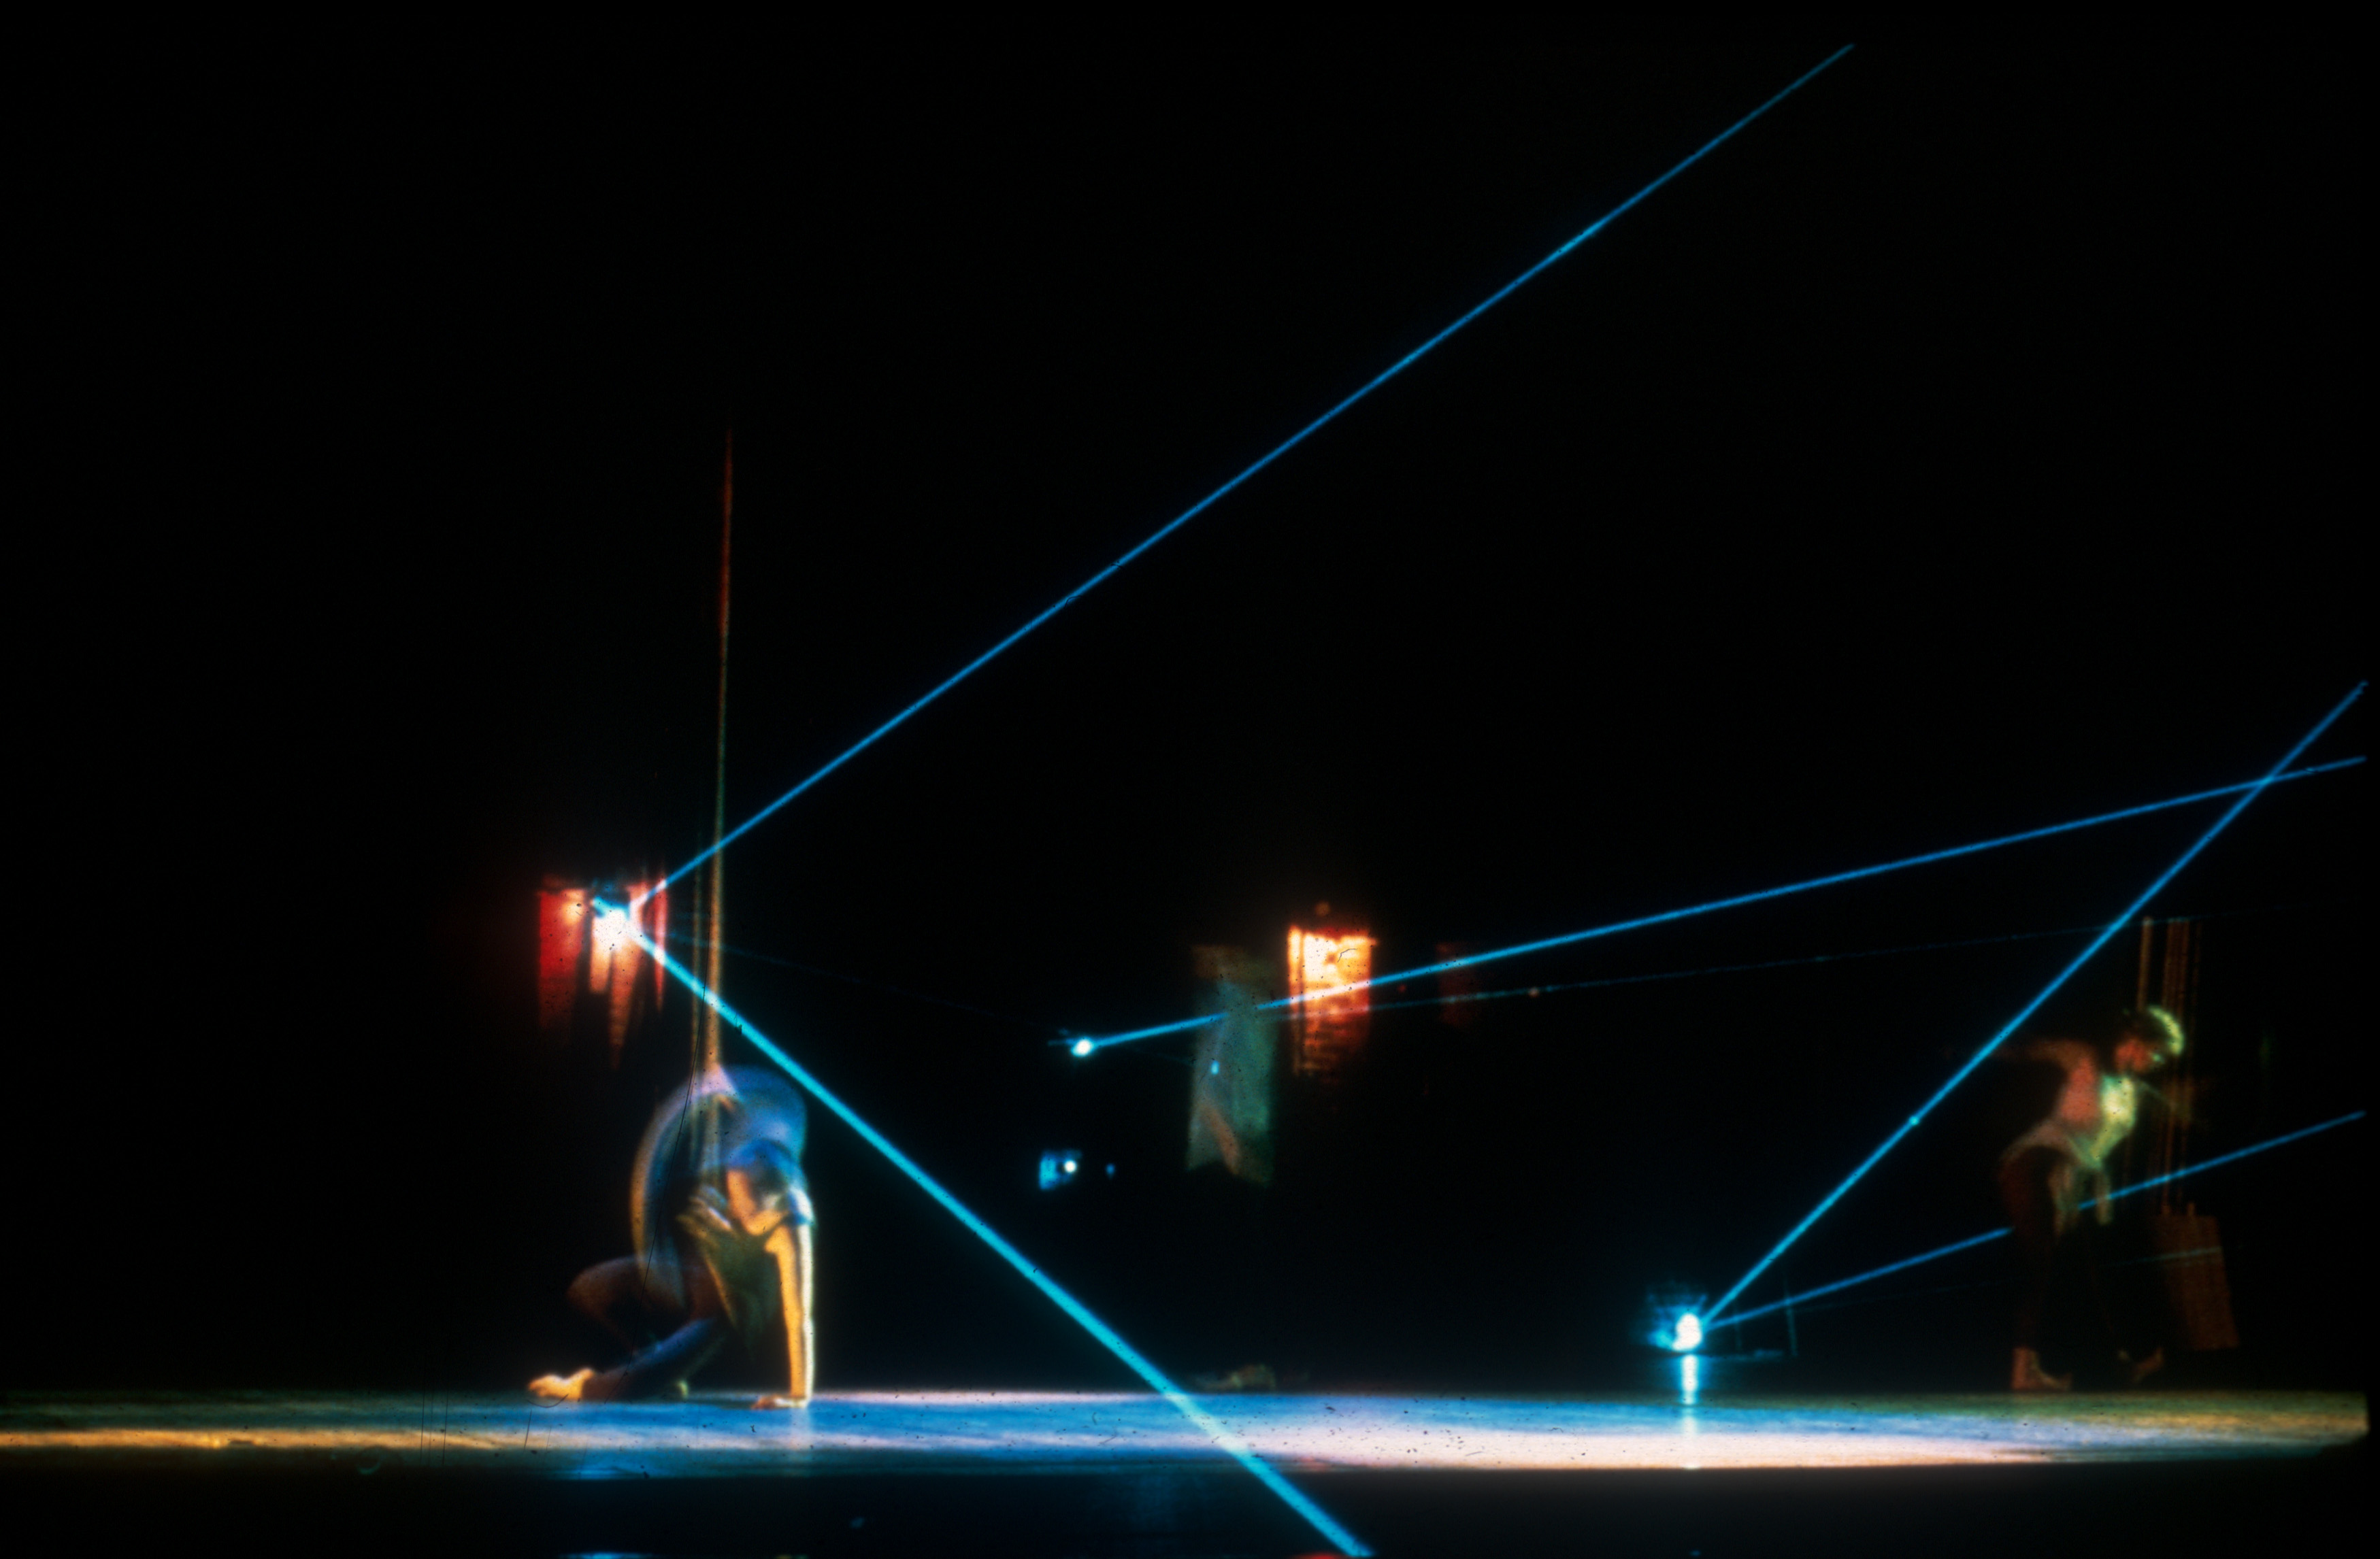 Dancer on floor_hand in Laser